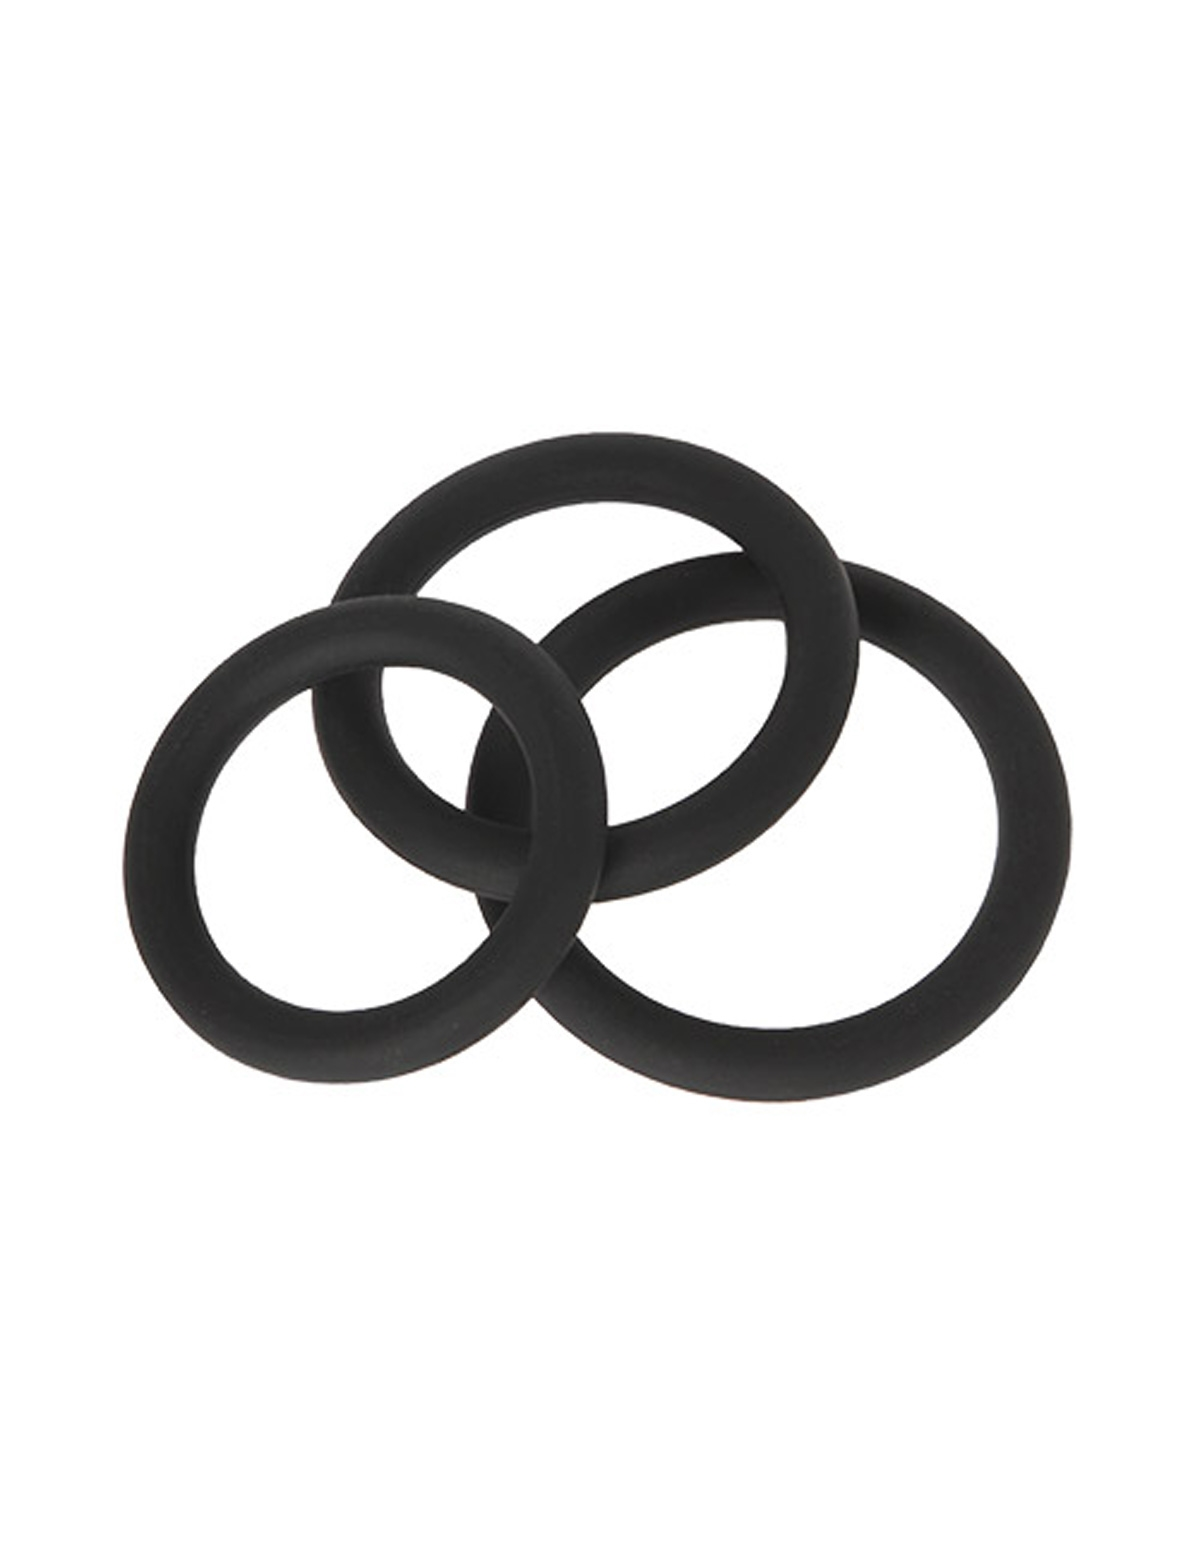 Malesation 3Pk Silicone C-Rings